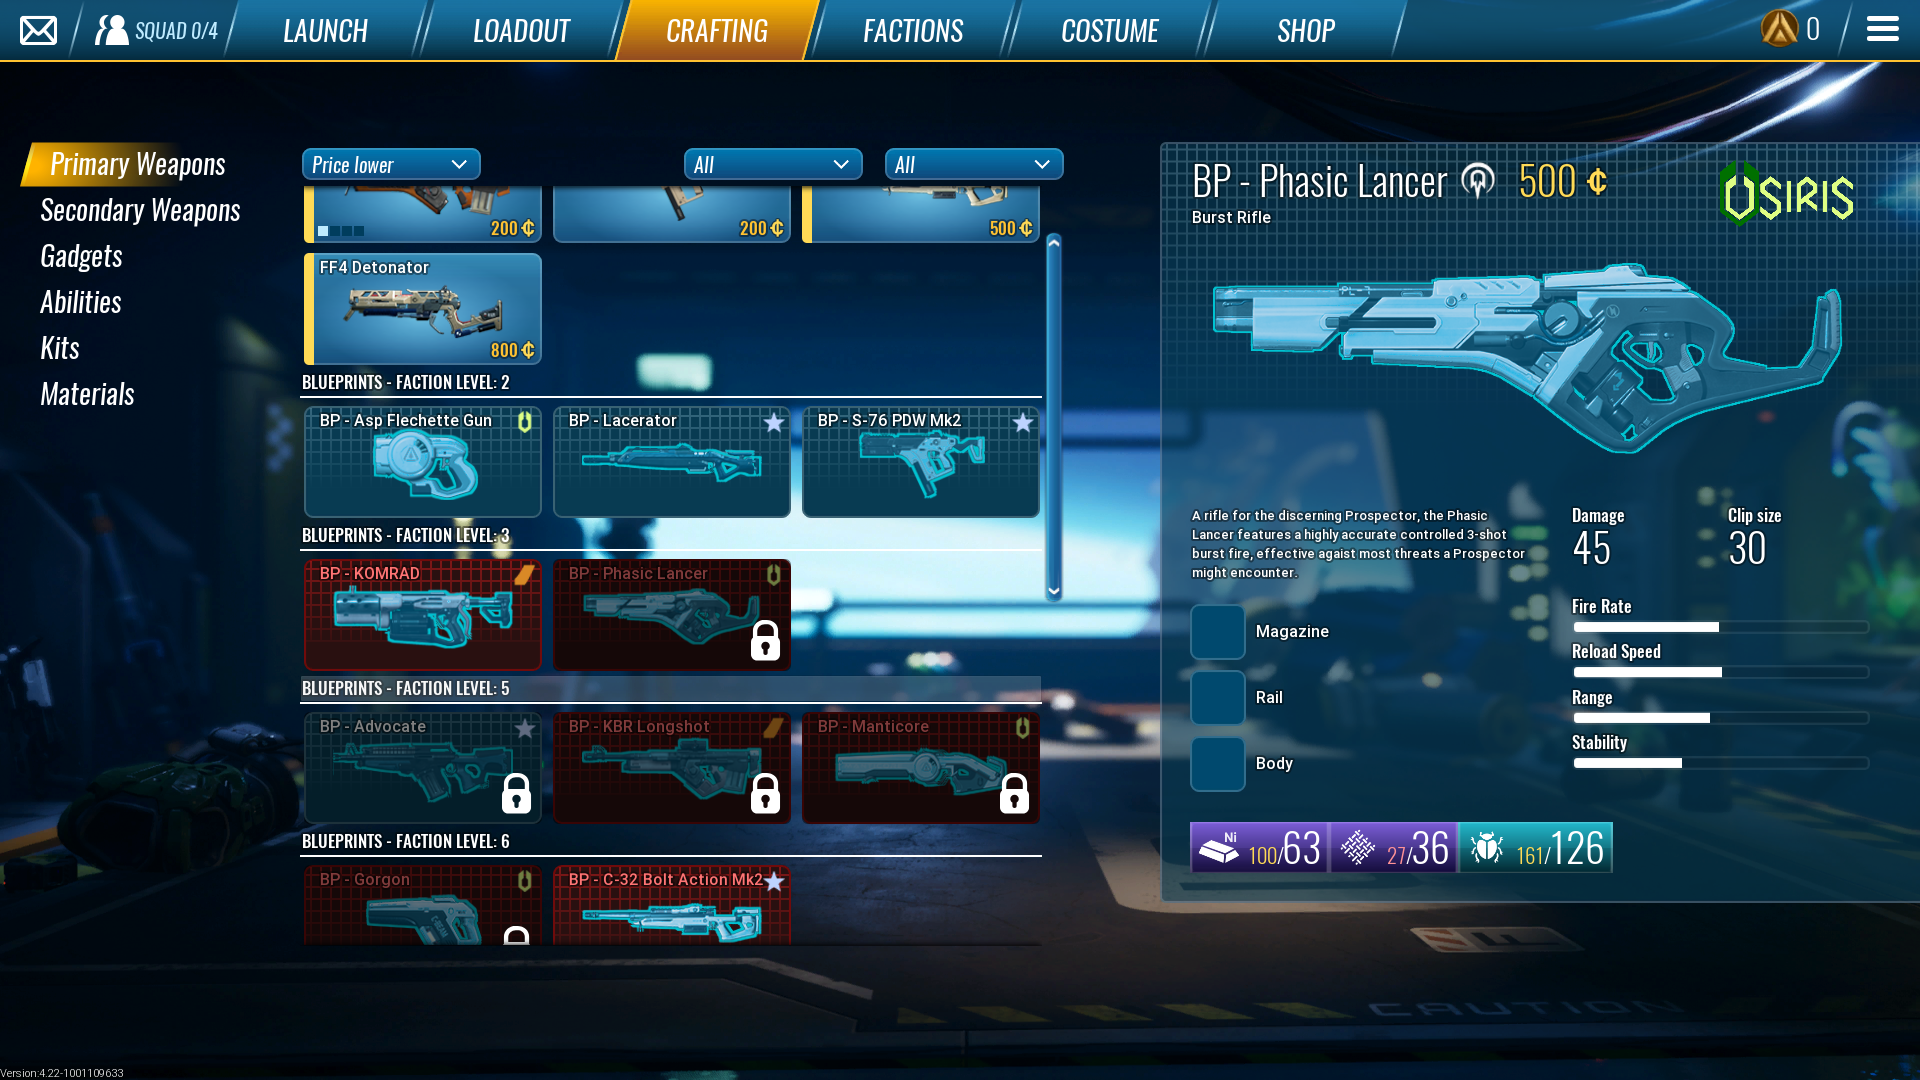 There are three different factions to level up, and each offer their own weapons to unlock.